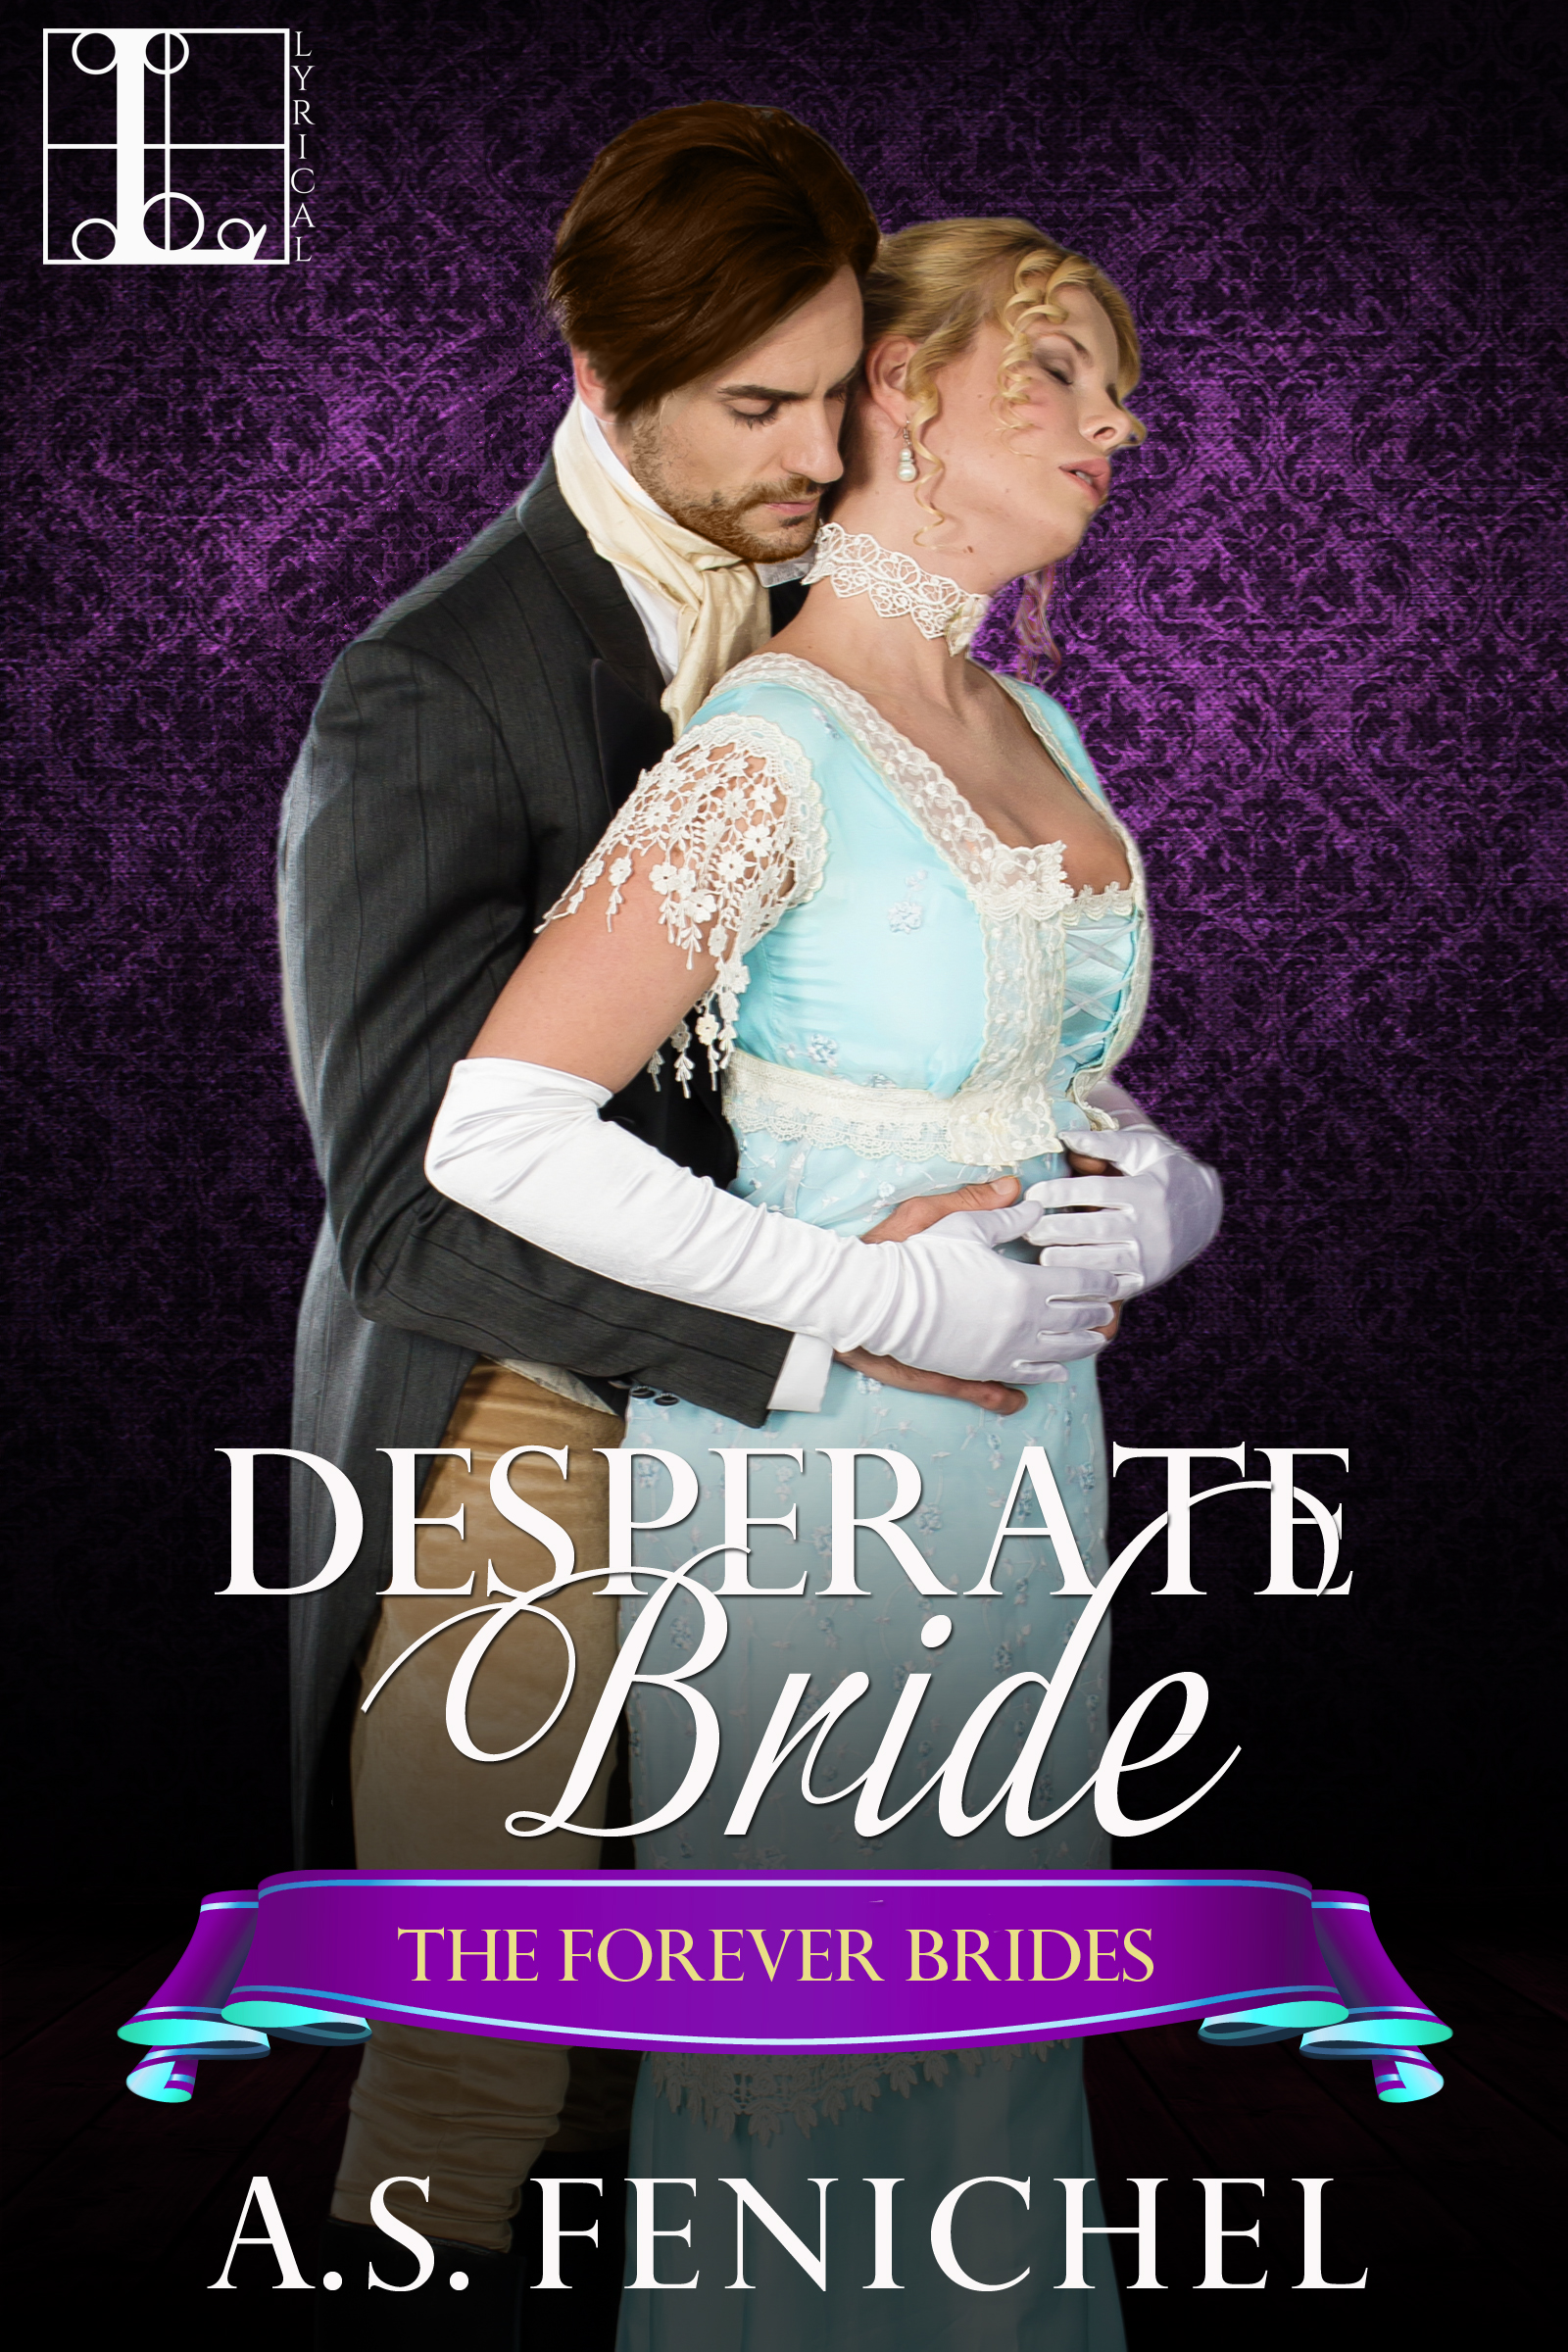 Desperate Bride by A.S. Fenichel